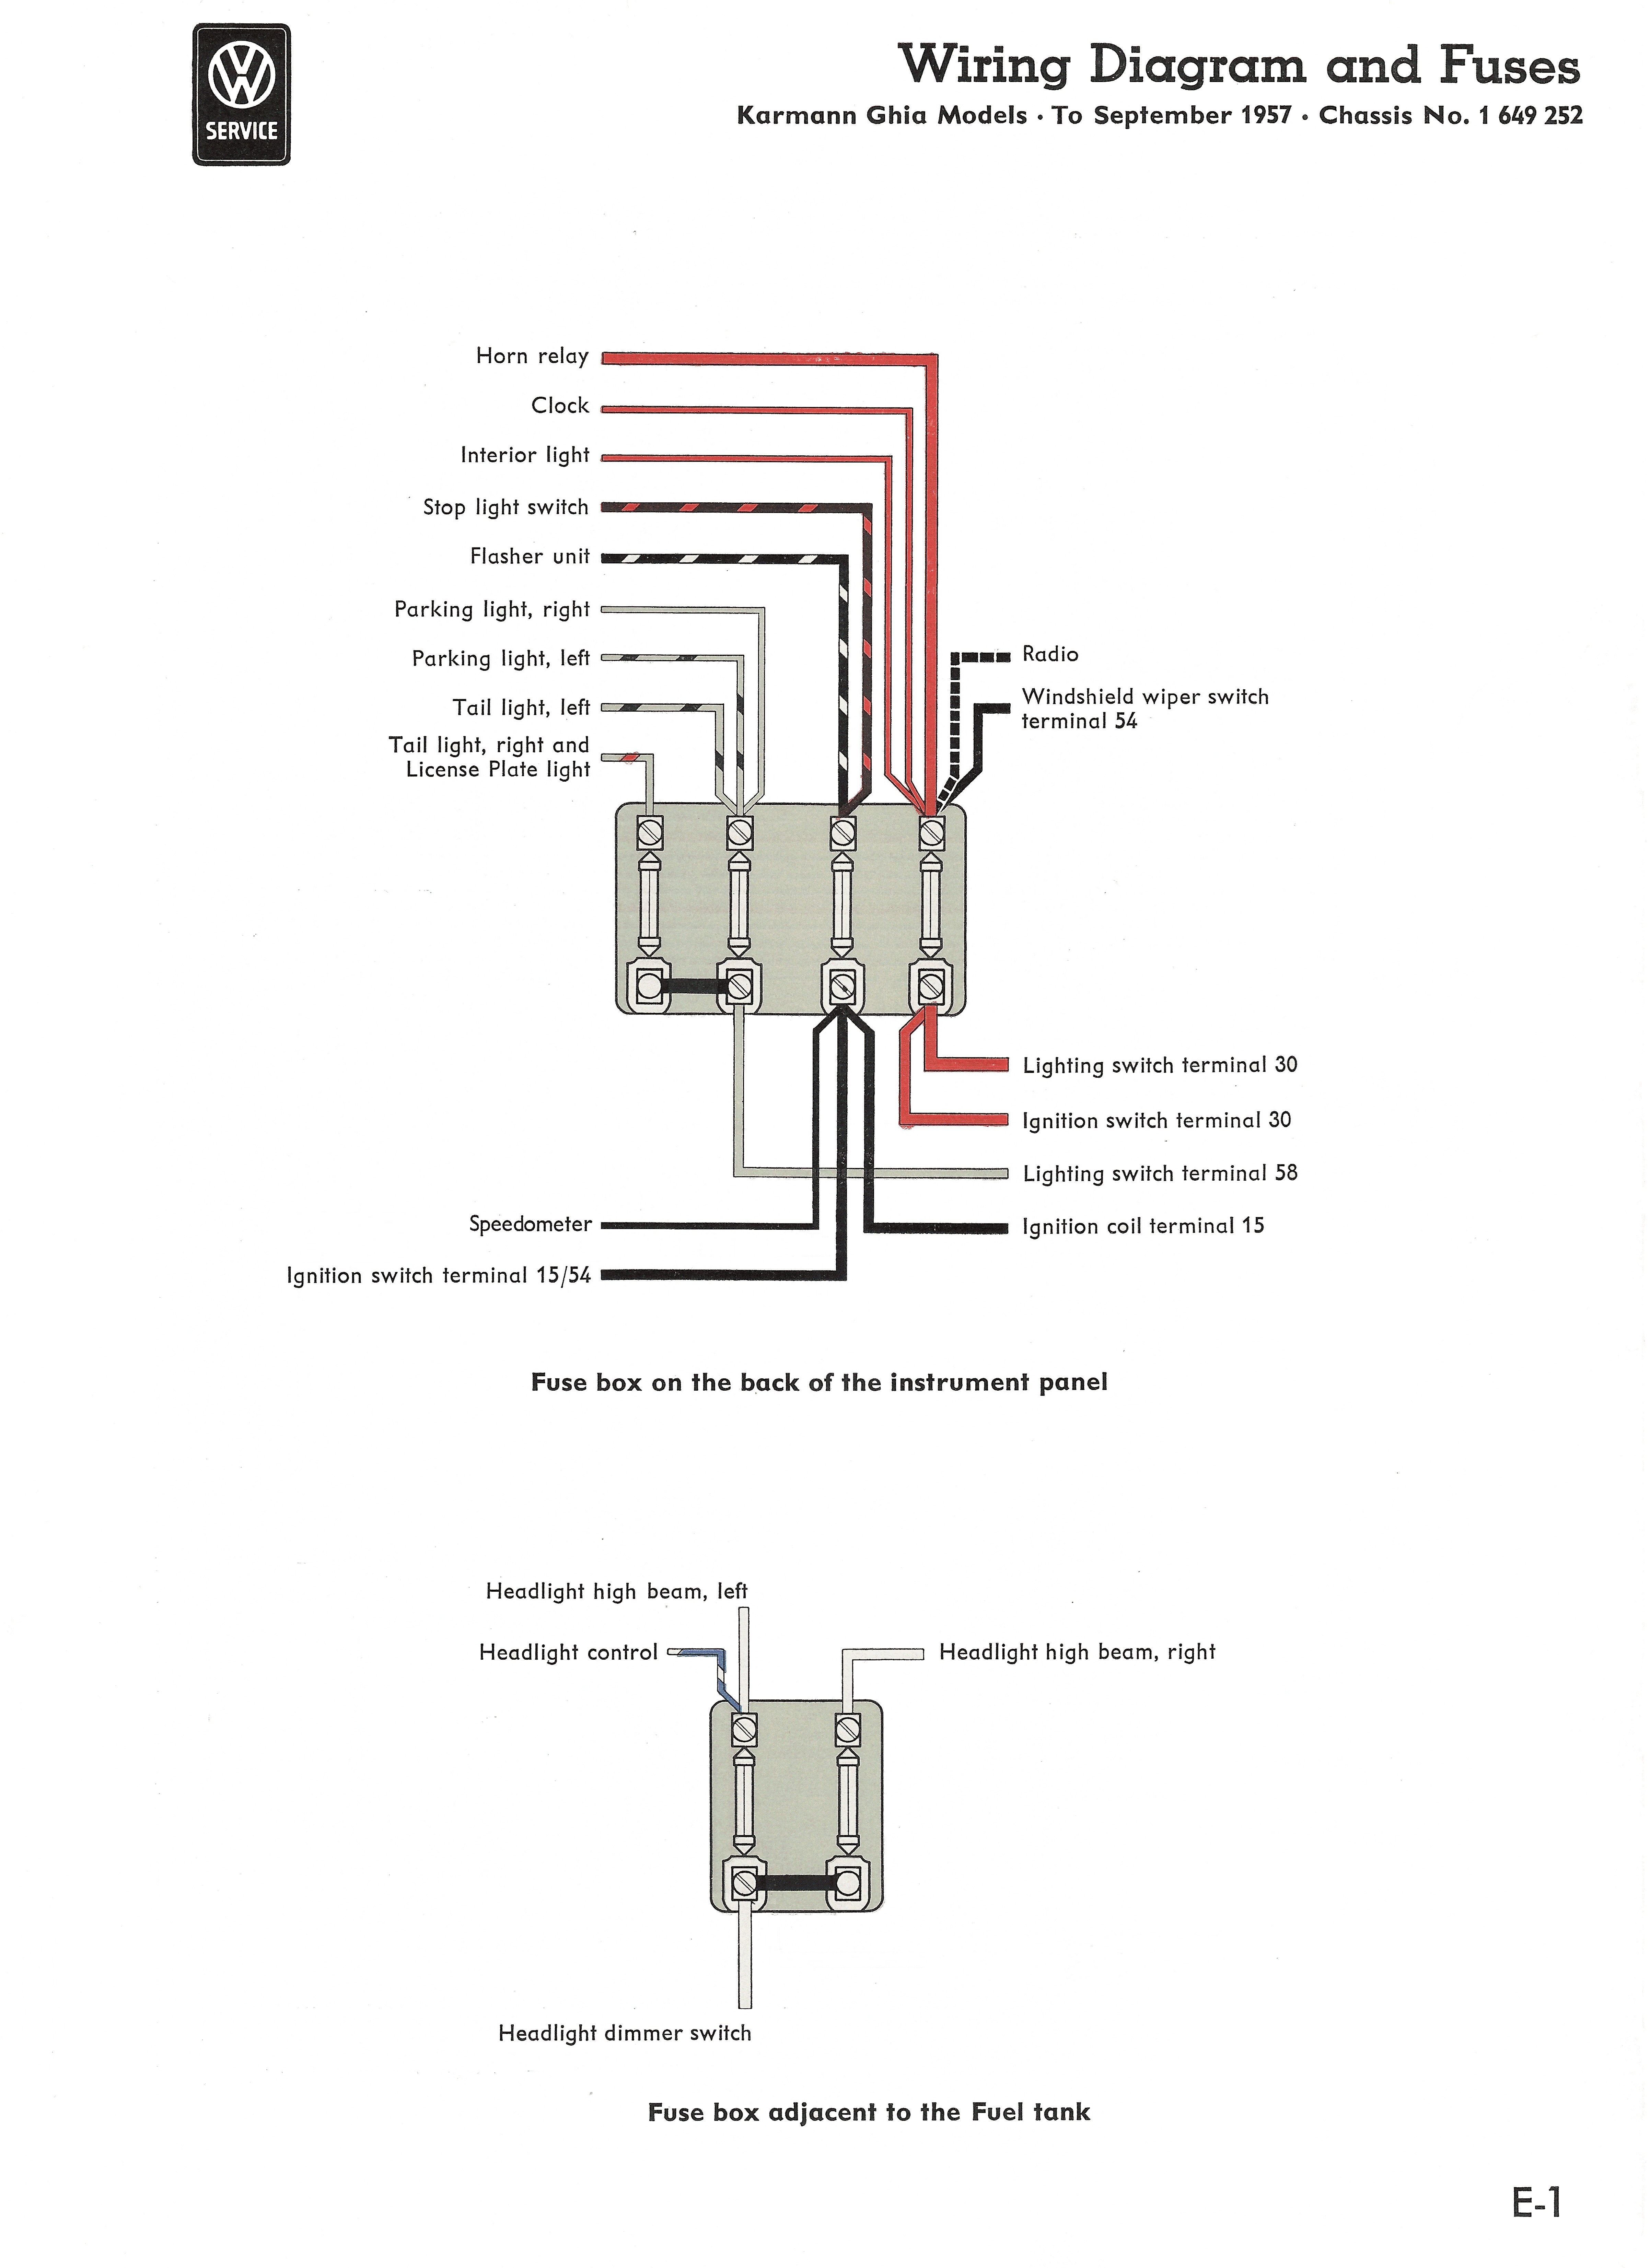 Karmann Ghia Wiring Diagrams Fuse Block 1956 57 Diagram